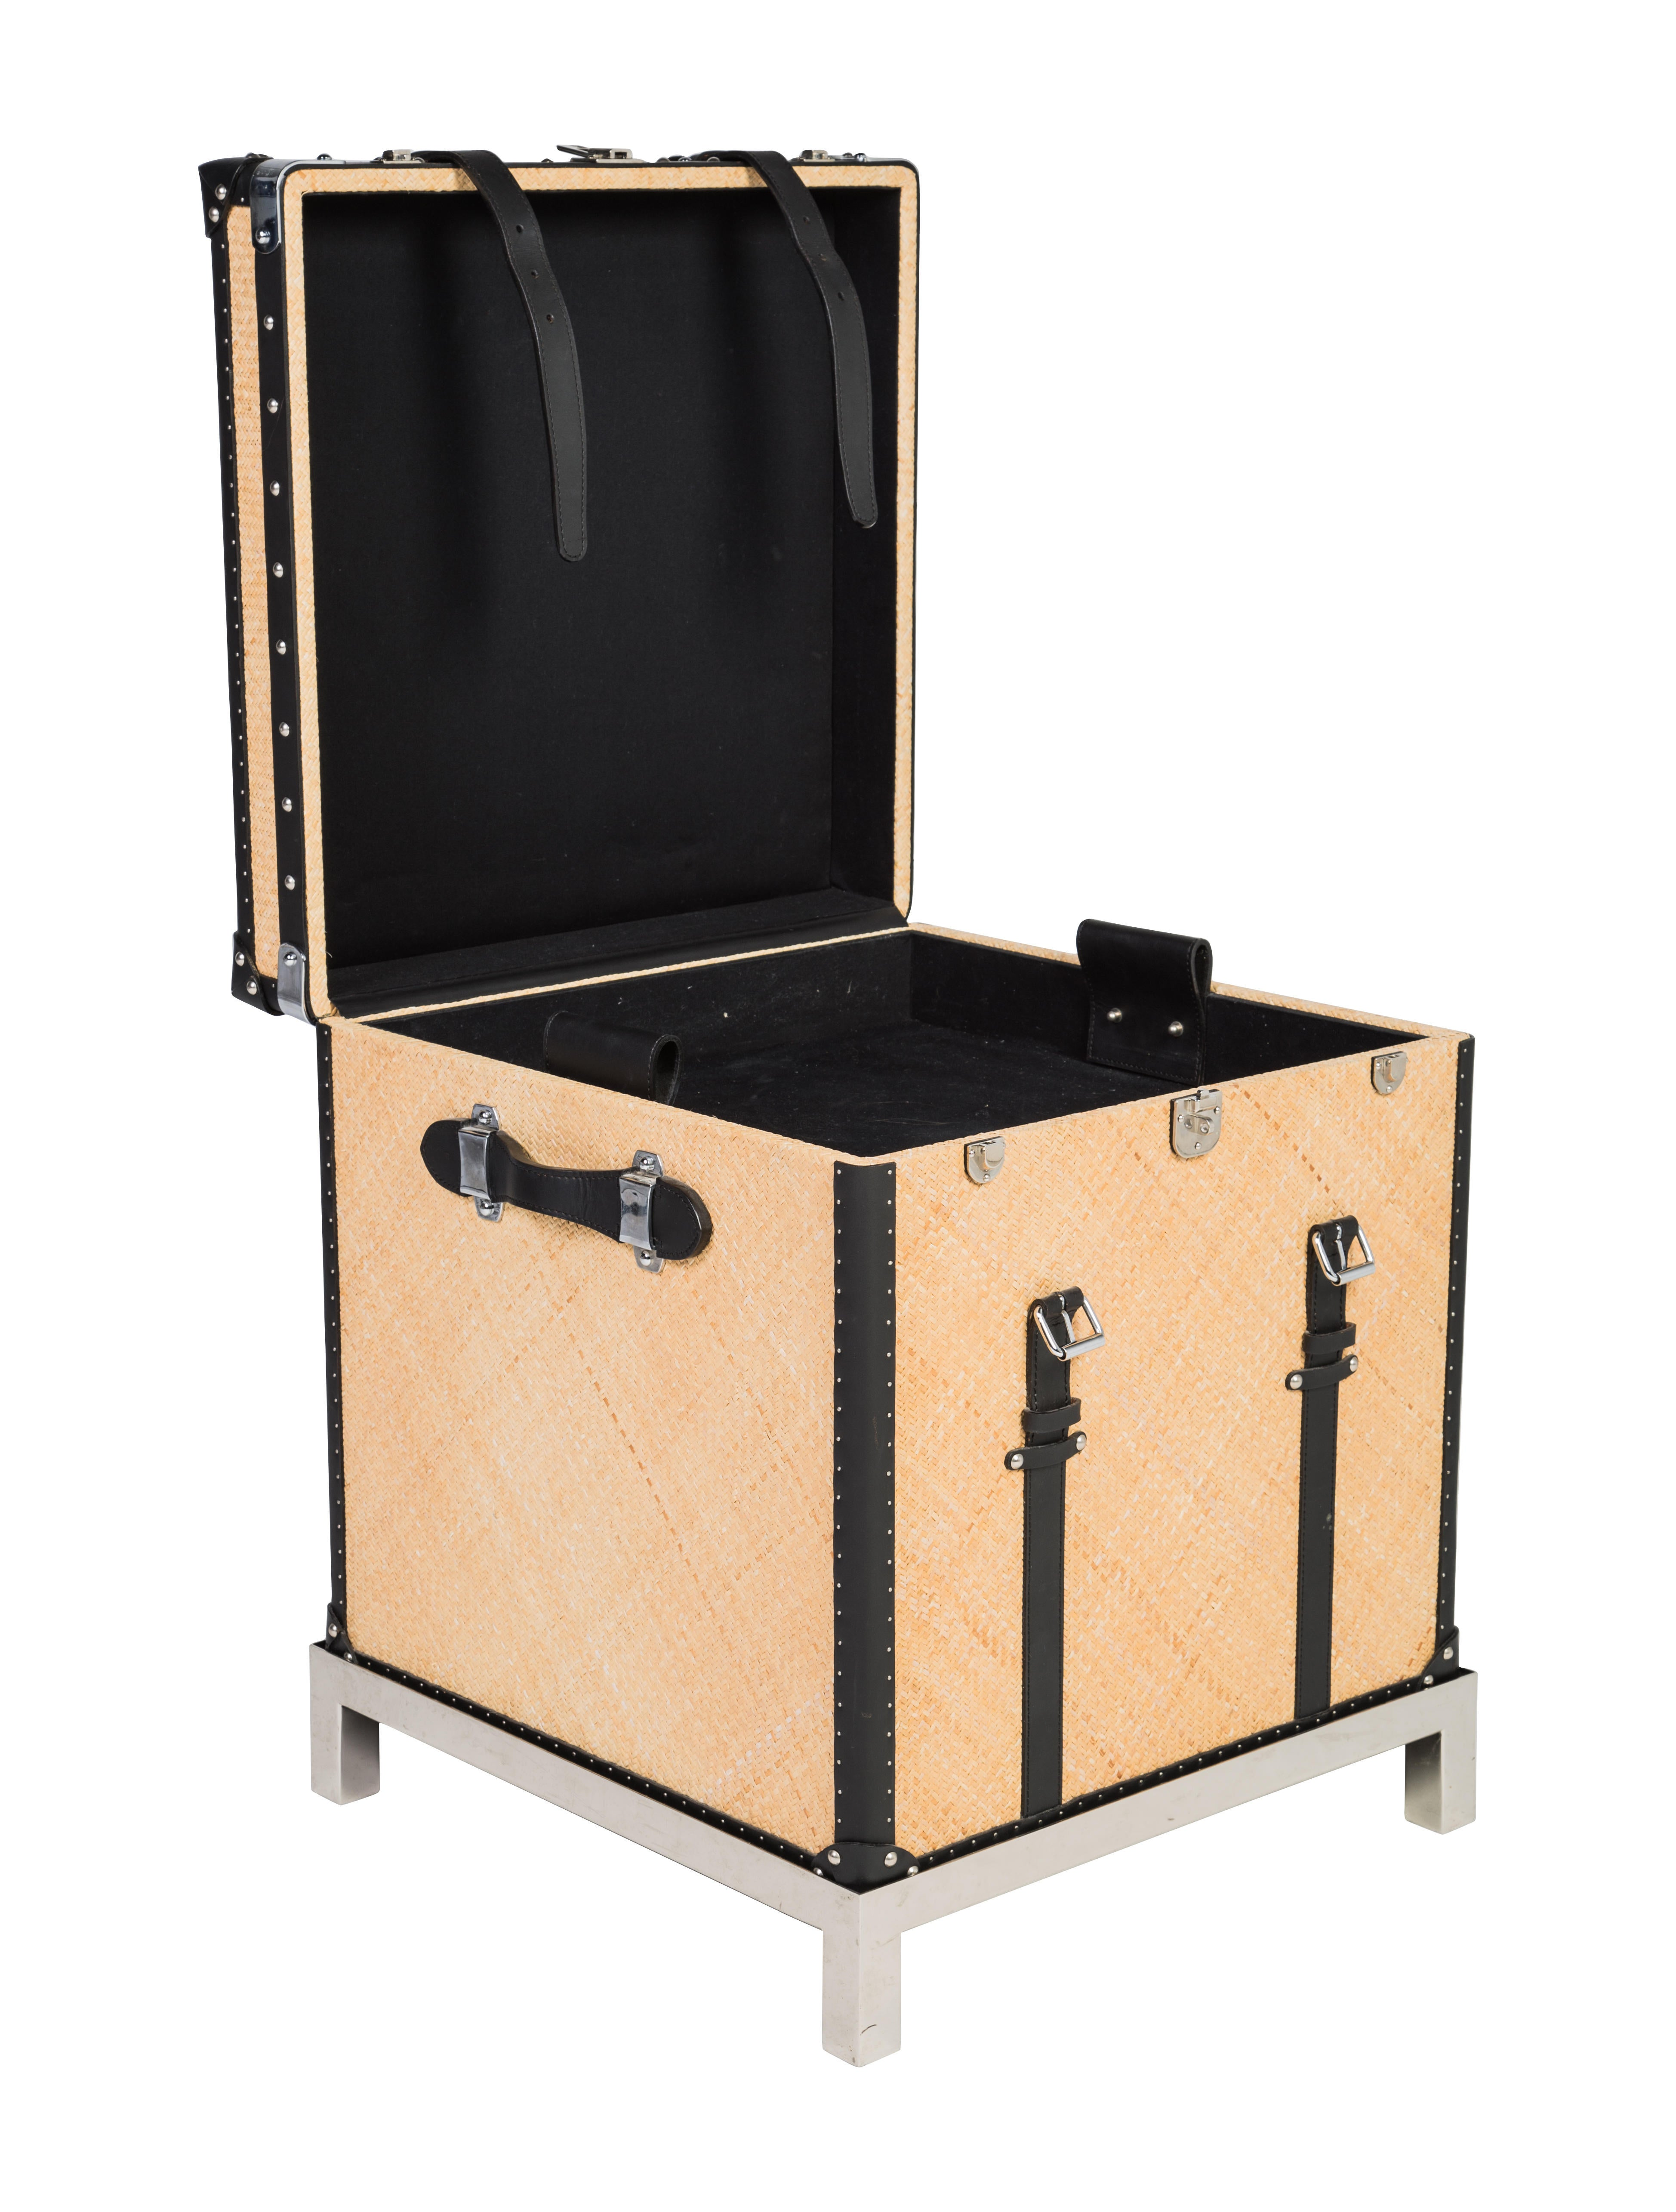 Ralph lauren mayfair trunk on stand furniture wyg22755 for Ralph lauren office furniture